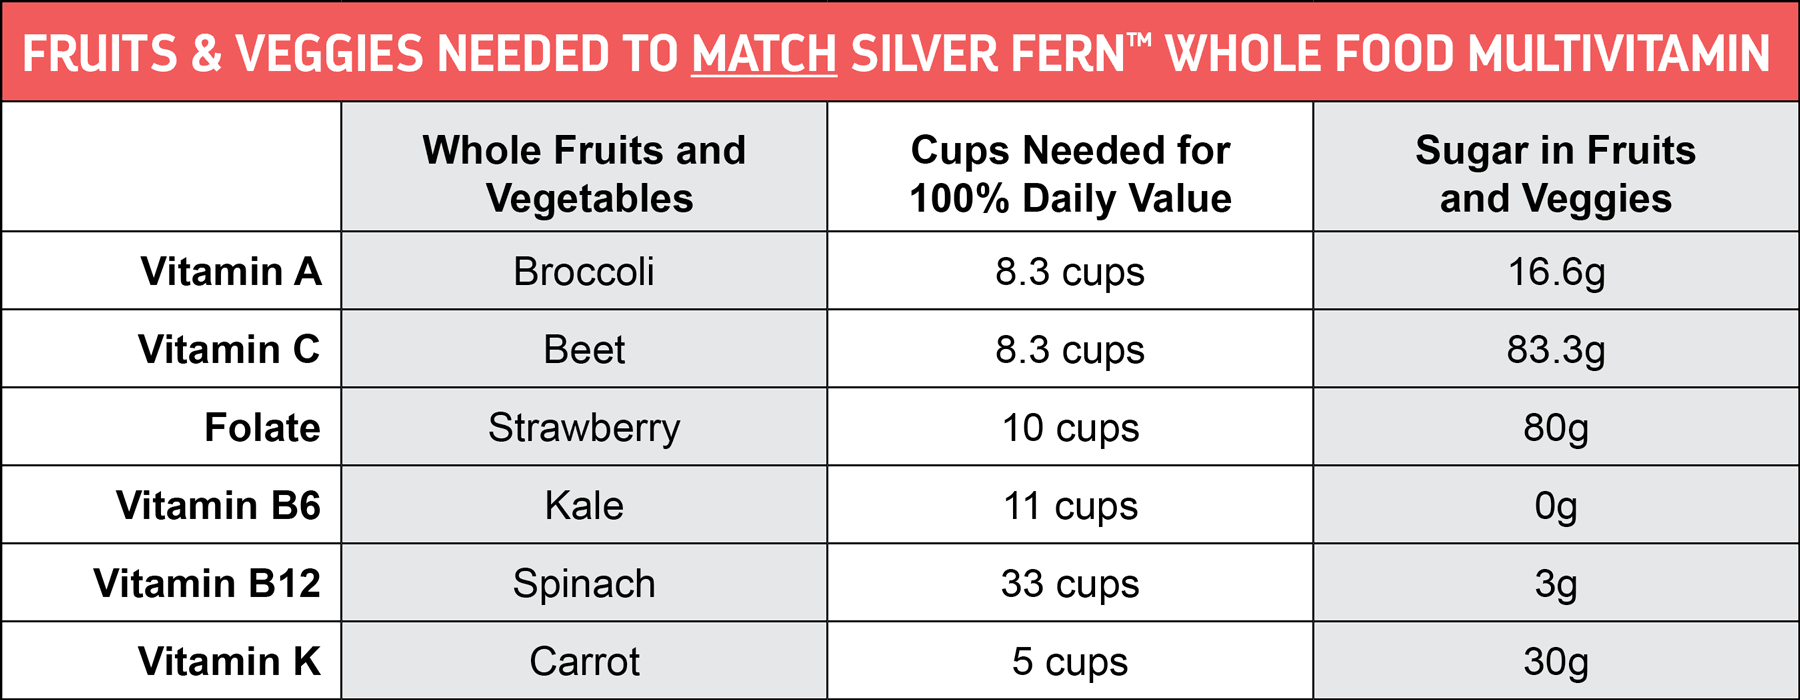 What is takes to match Silver Fern's Whole Food Vitamin